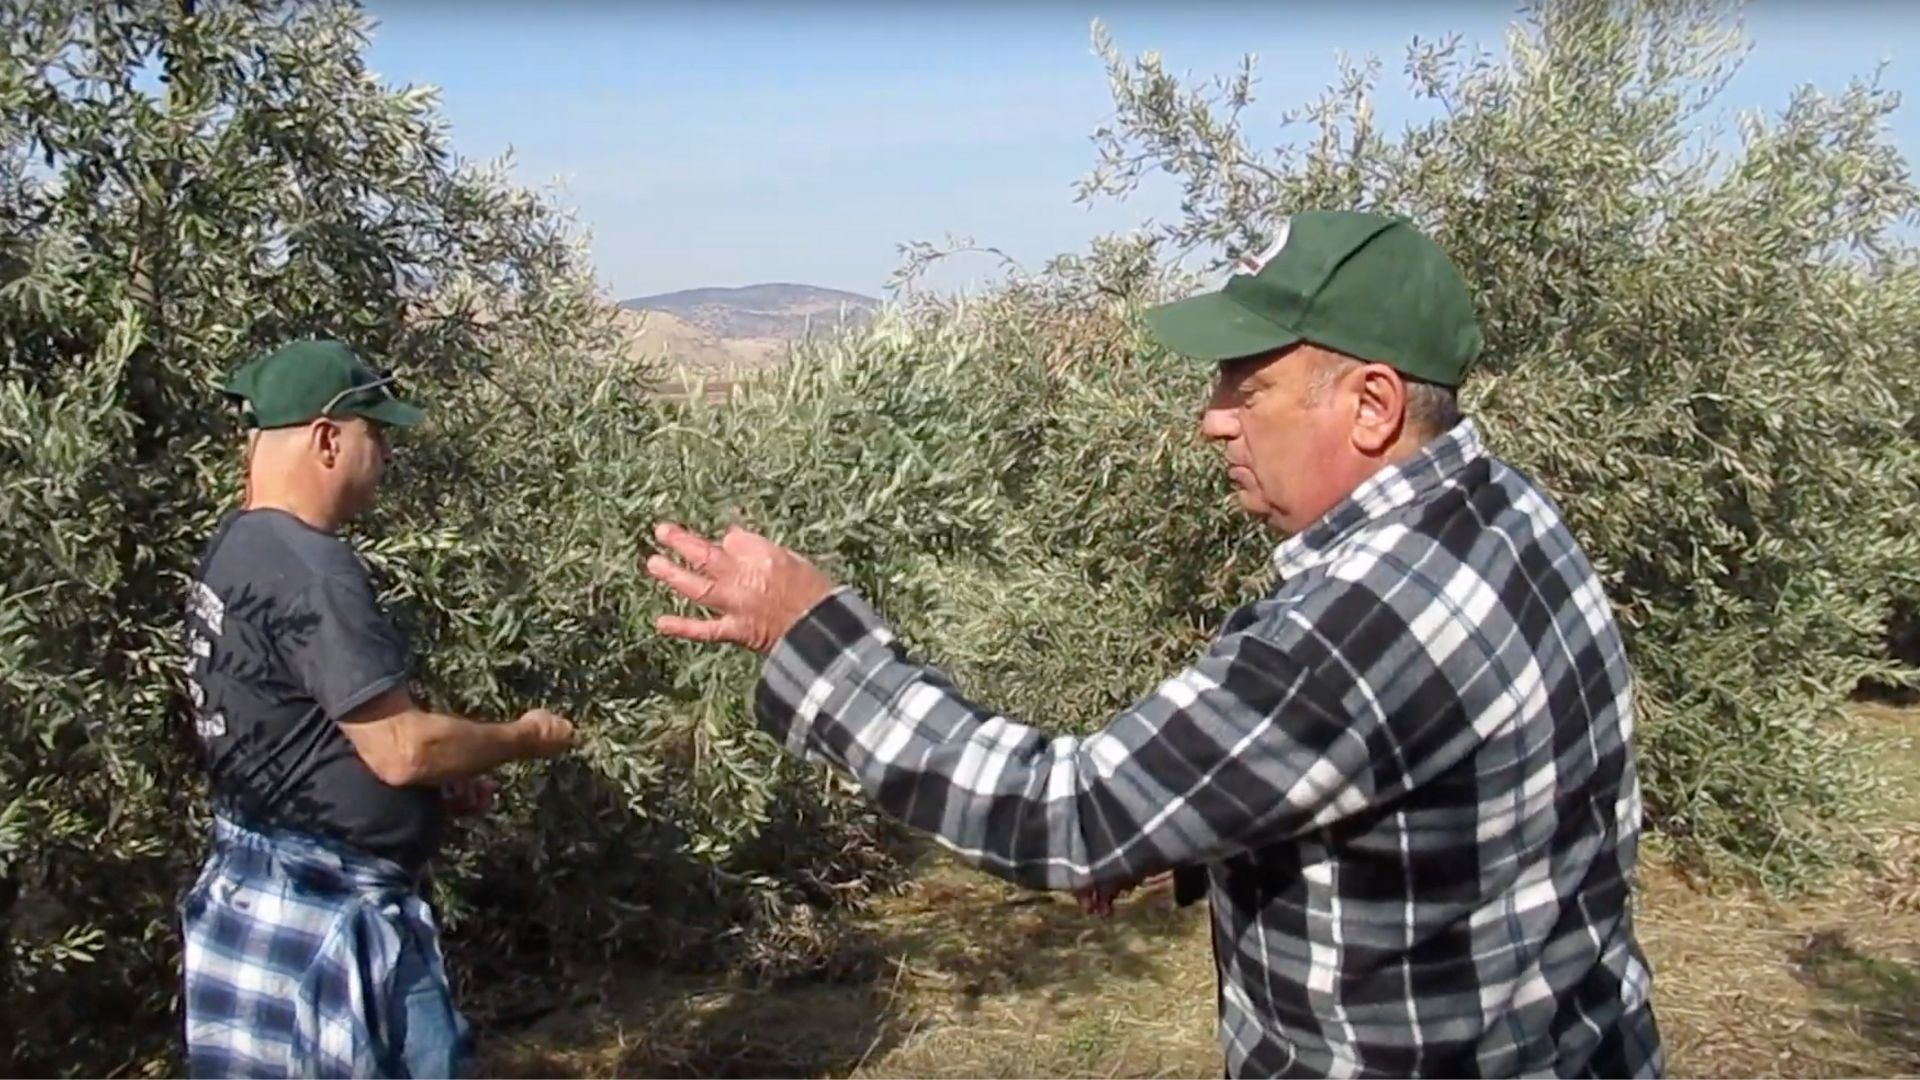 Olive growth land in Israel